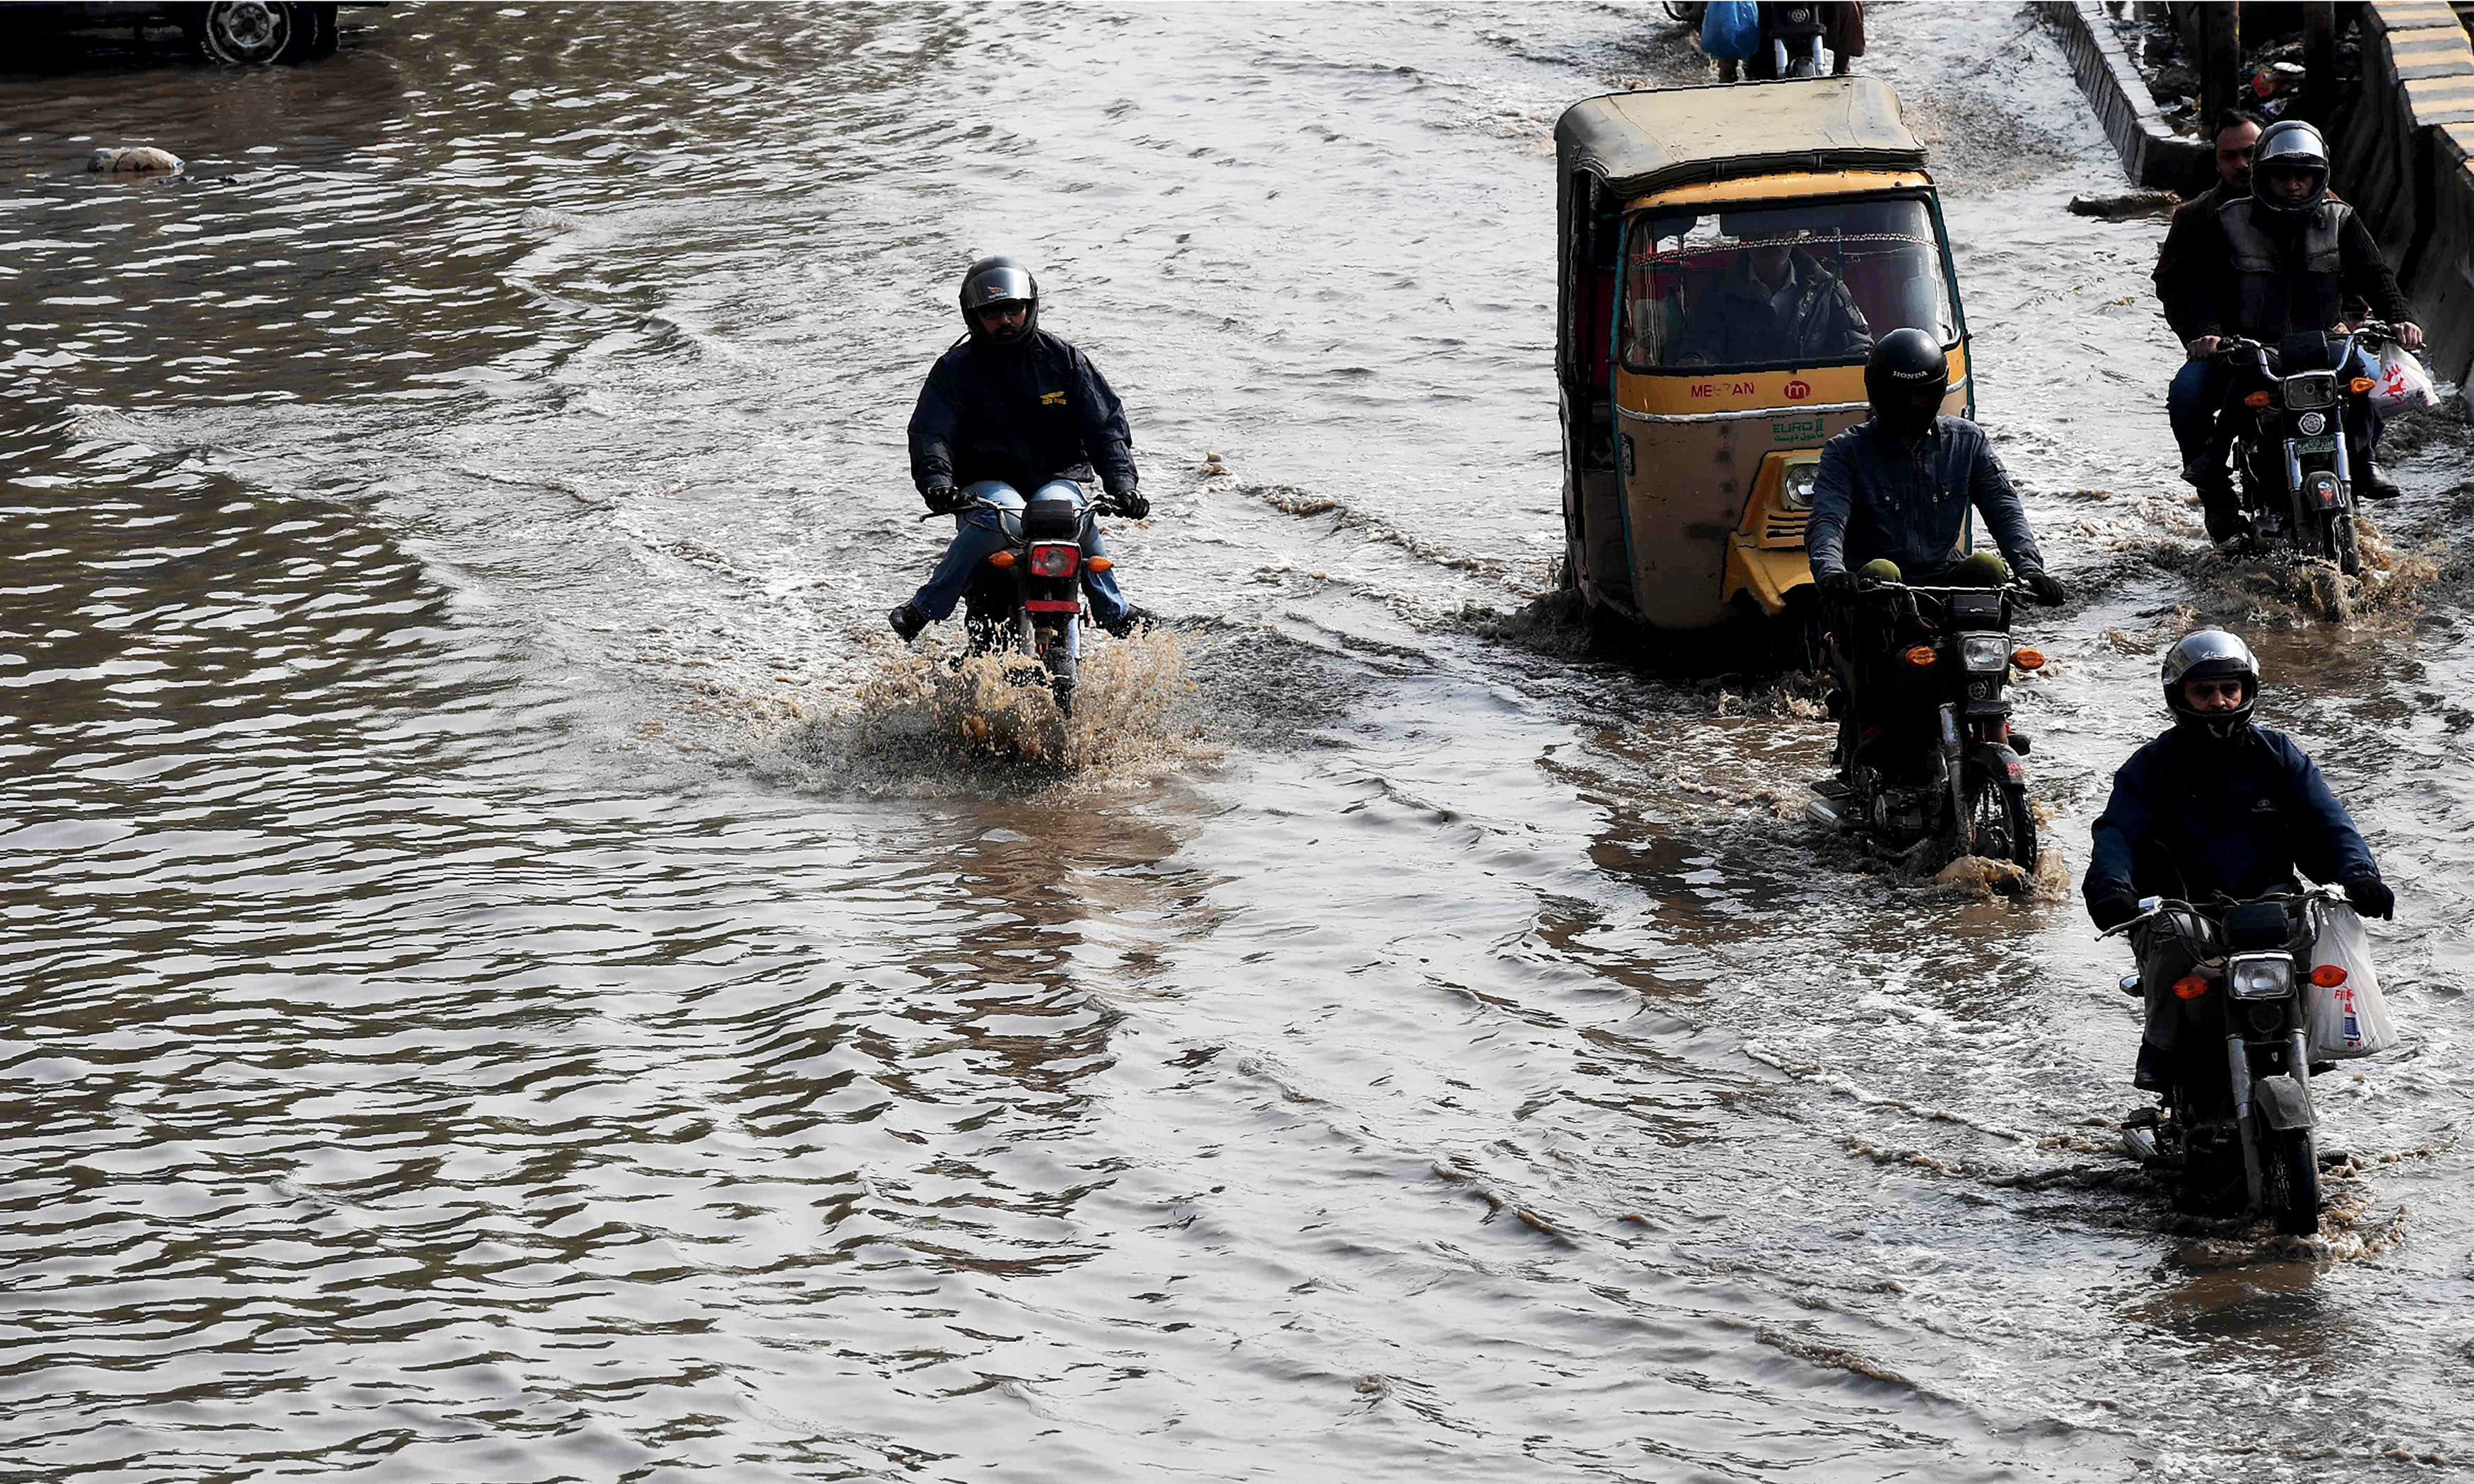 Commuters cross a flooded street after heavy rain in Karachi. —AFP